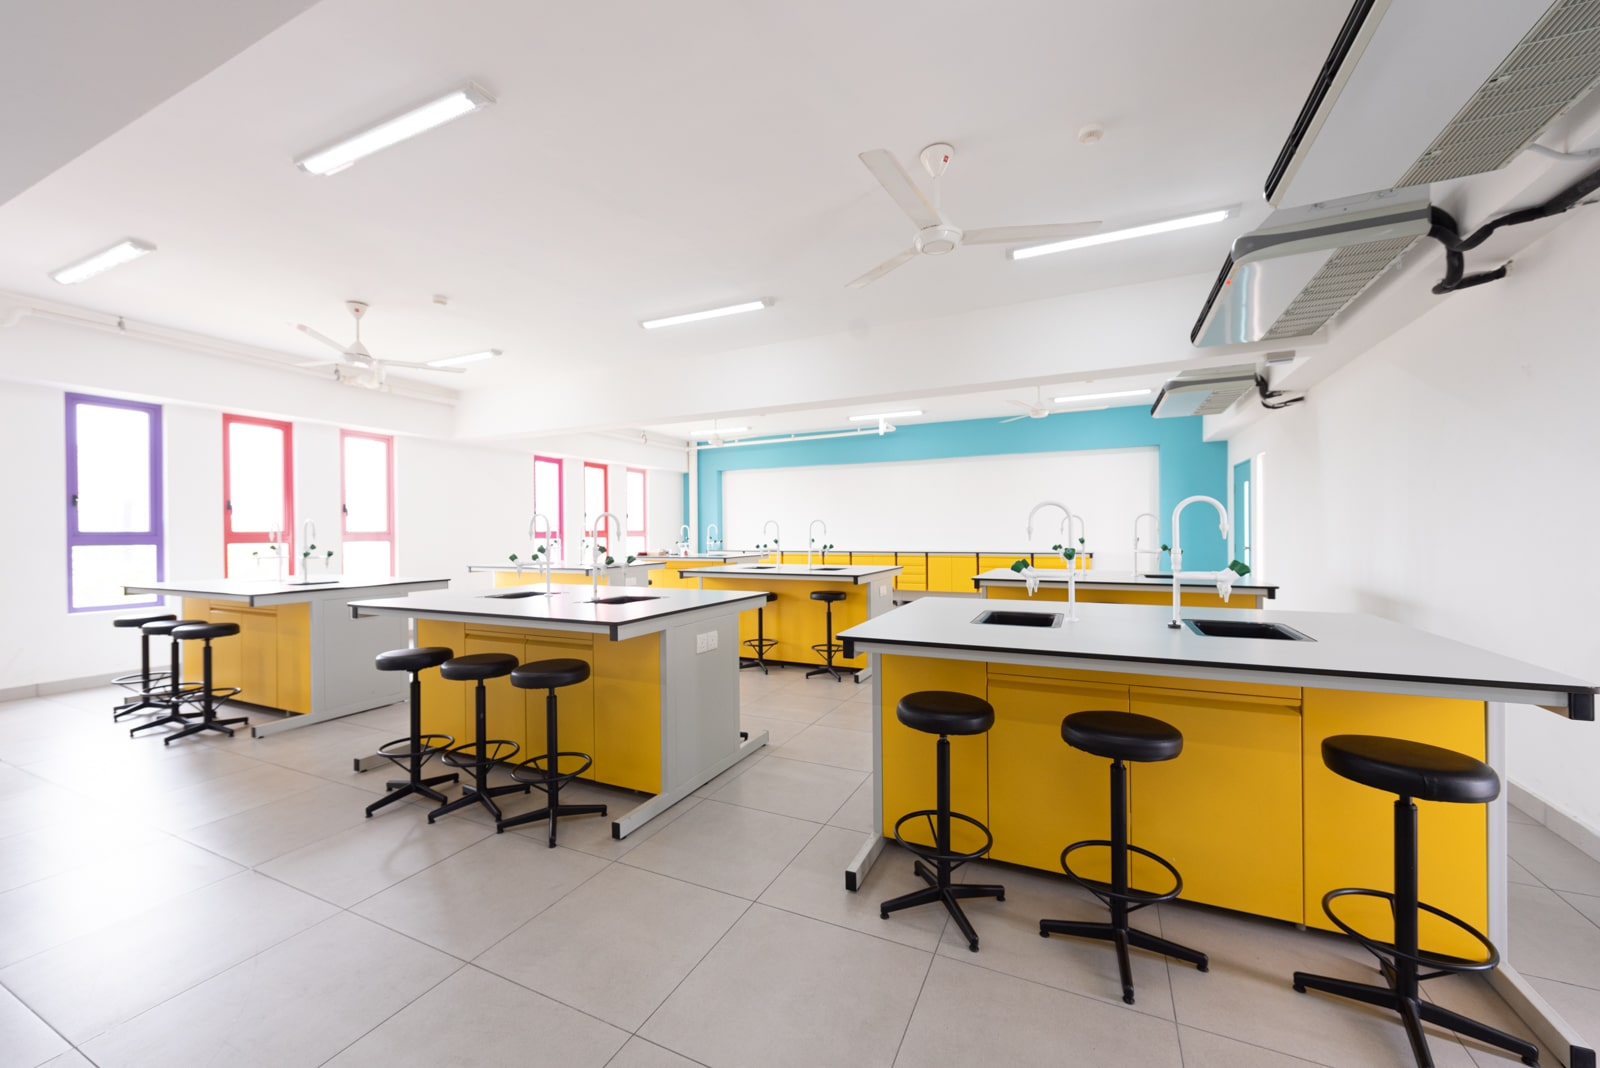 State-Of-The-Art School Facilities